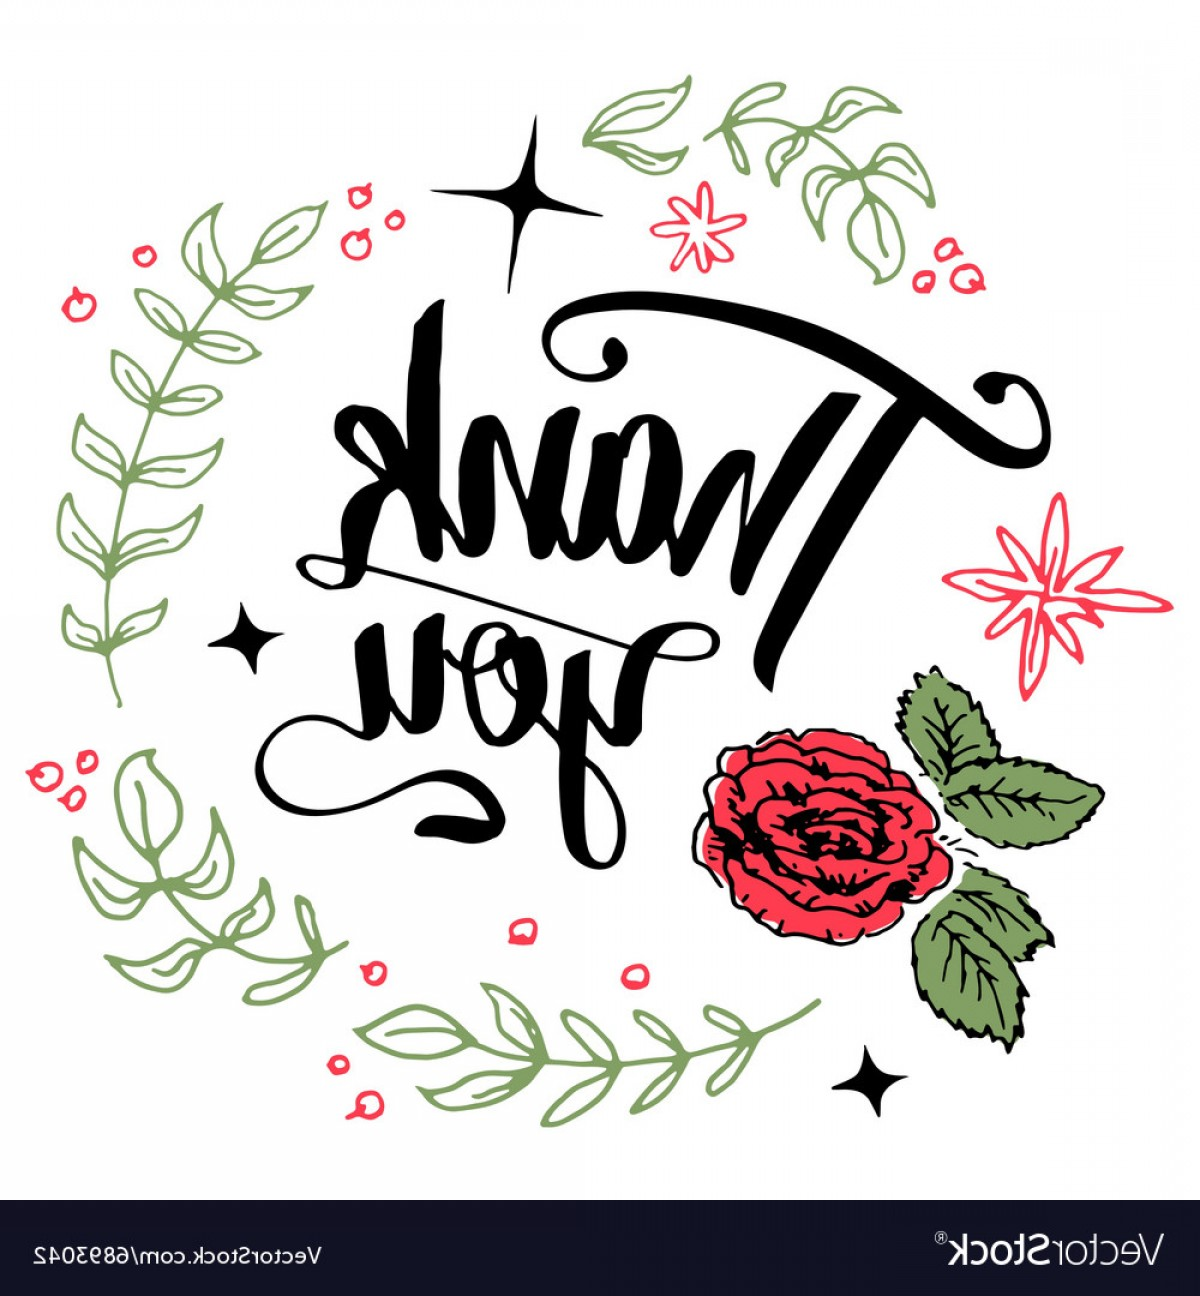 Floral Vector Calligraphy: Thank You Floral Wreath Calligraphy Vector